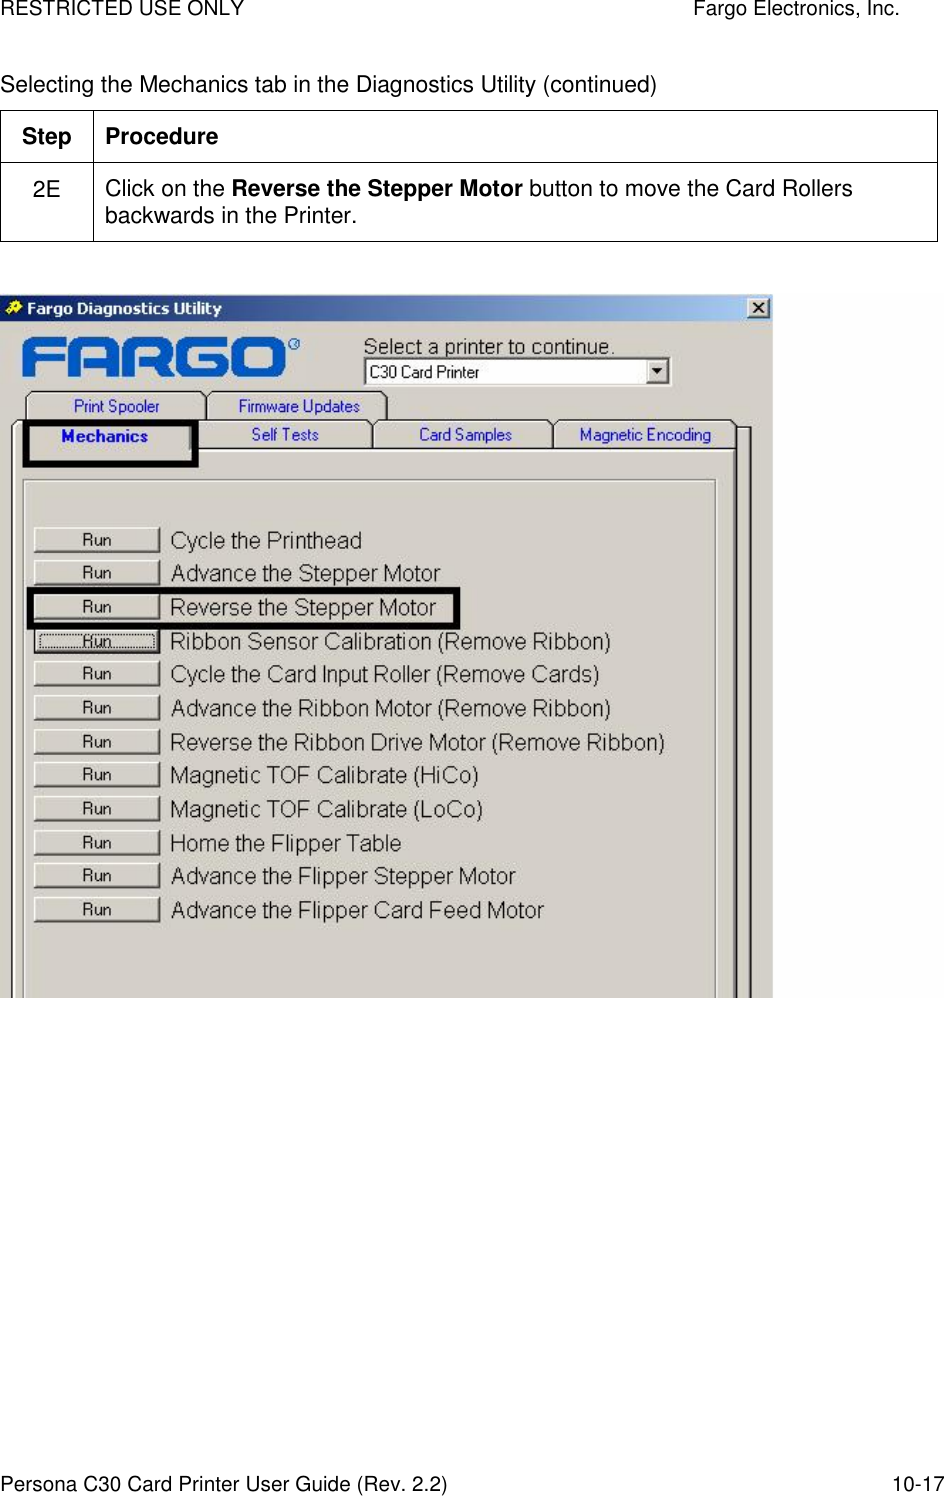 FARGO ELECTRONICS INC C30E DRIVERS FOR MAC